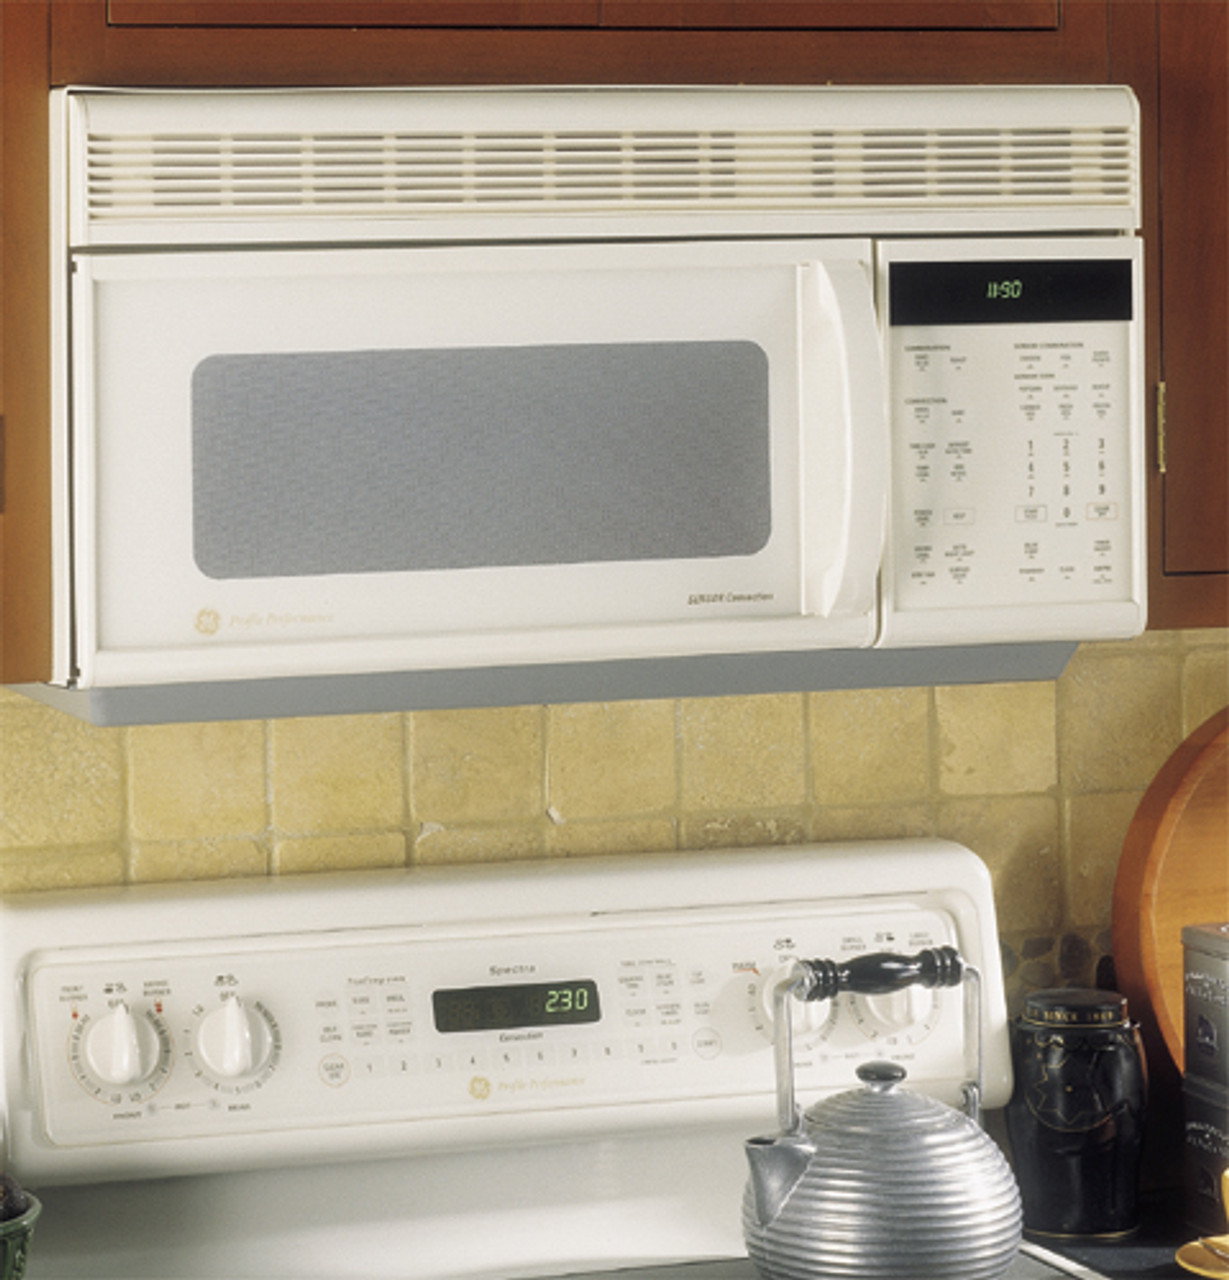 ge profile performance spacemakerplus microwave convection oven w sensor cooking jvm1190cb